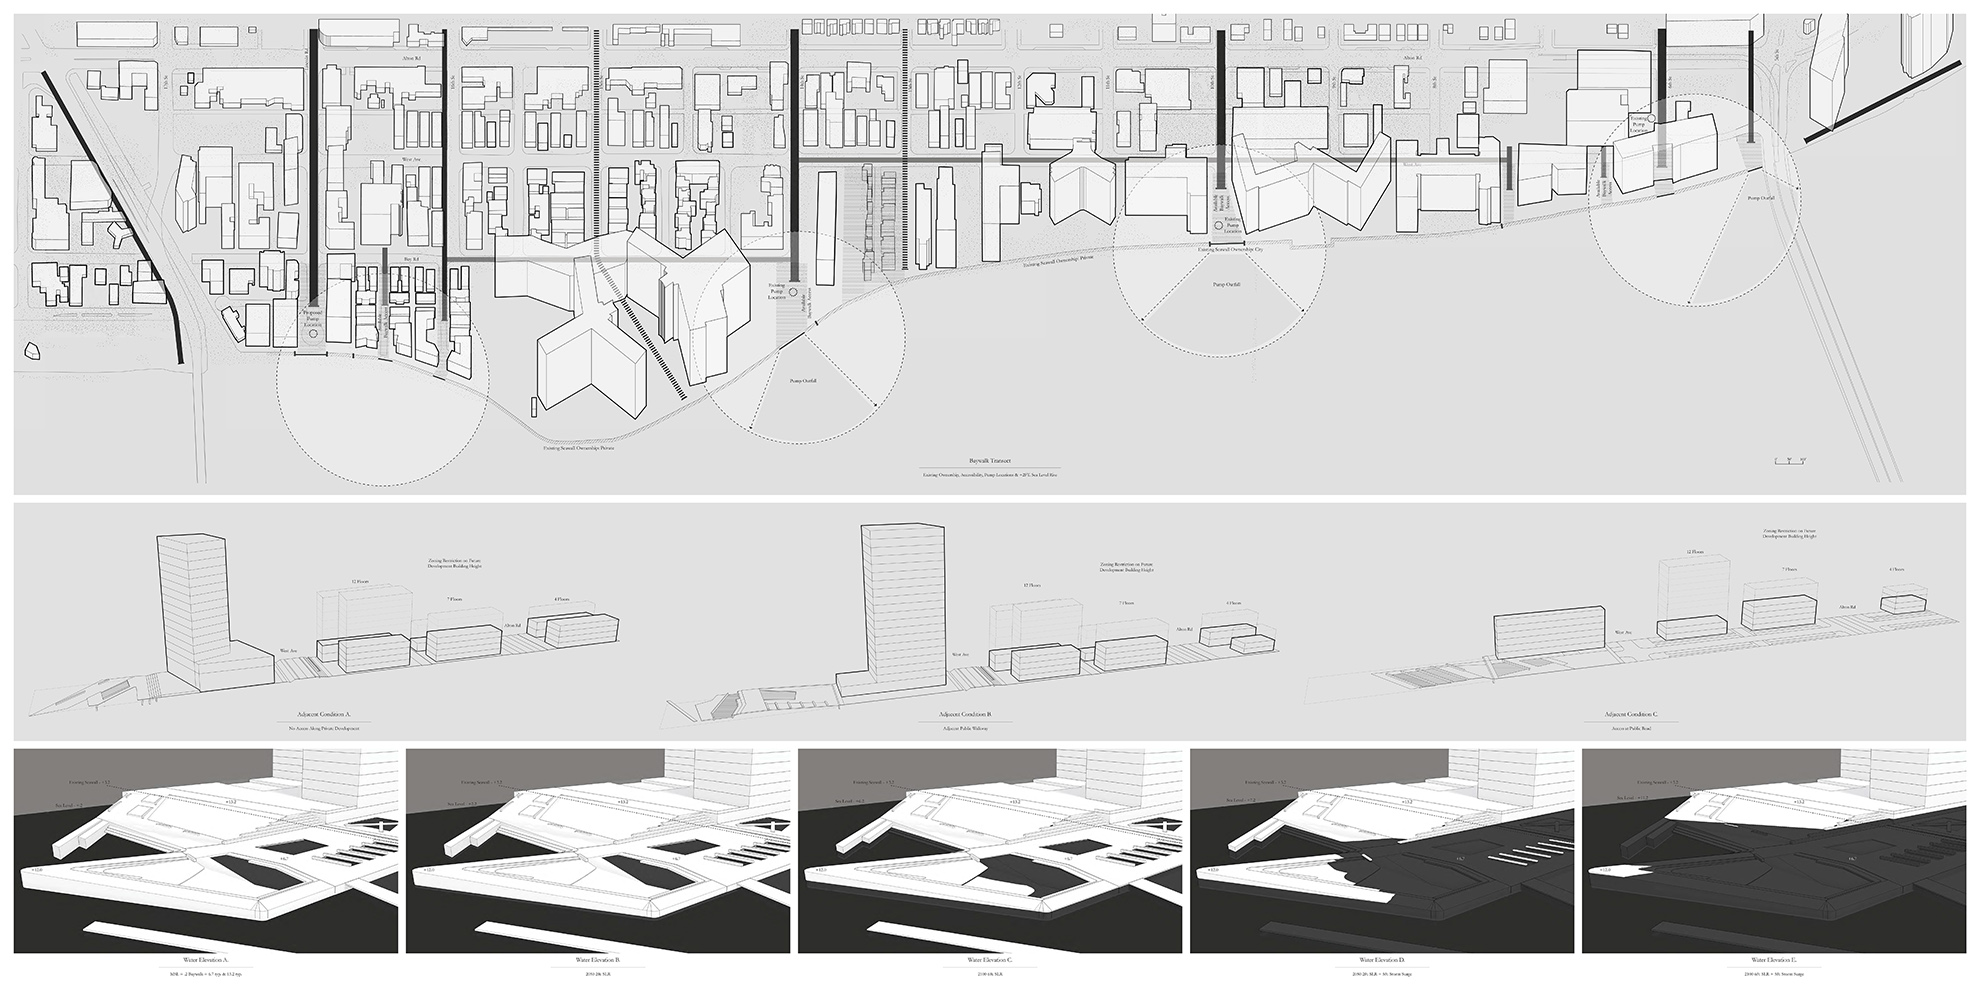 MIAMI Final Review 36×72 _ 1 Concept and Transect.indd